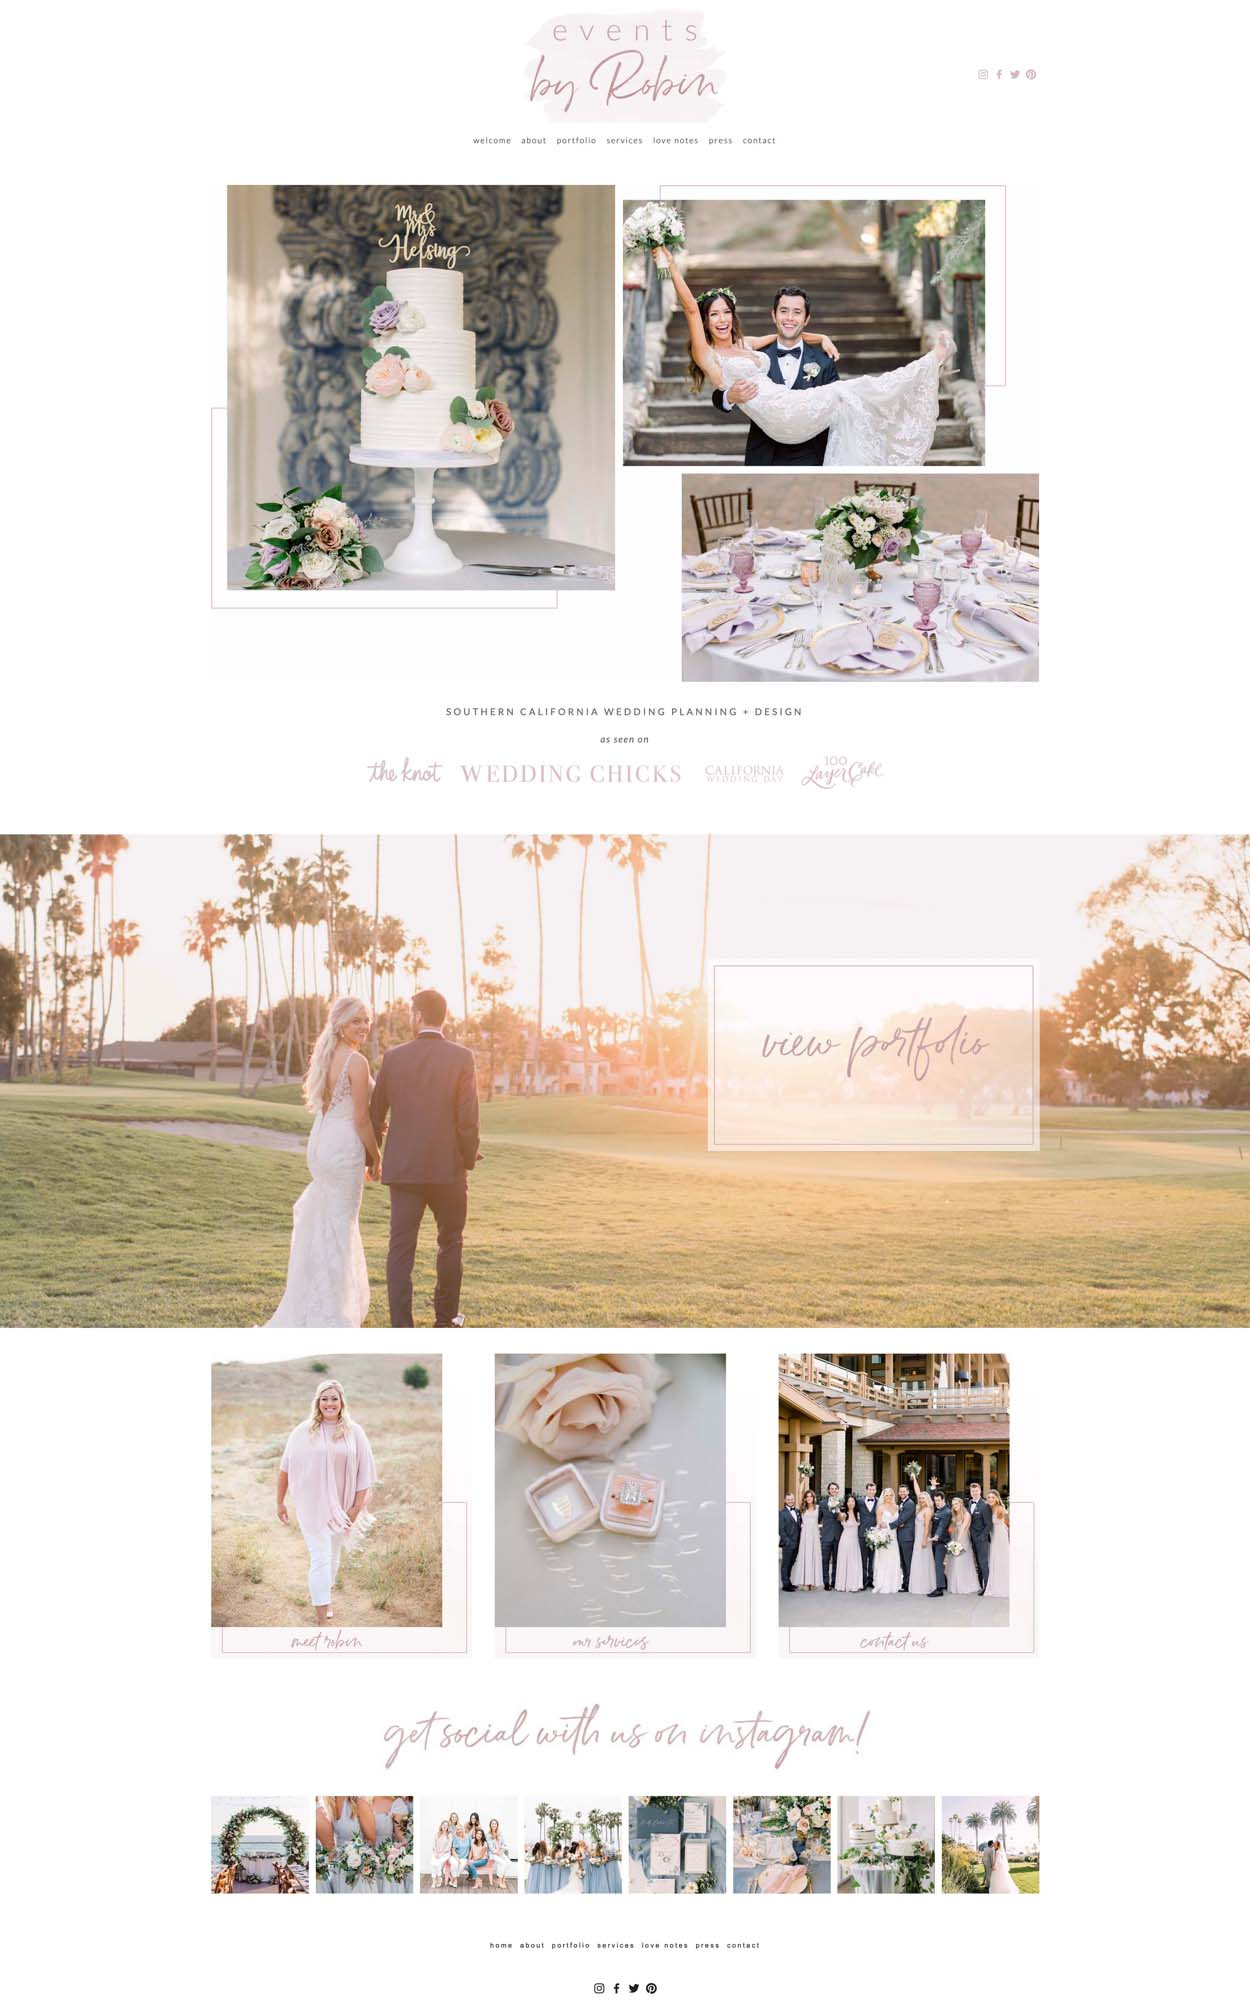 theeditorstouch.com | Squarespace Website Designer for Wedding Industry Professionals | The Editor's Touch | Luxury Branding and Online Marketing Expert